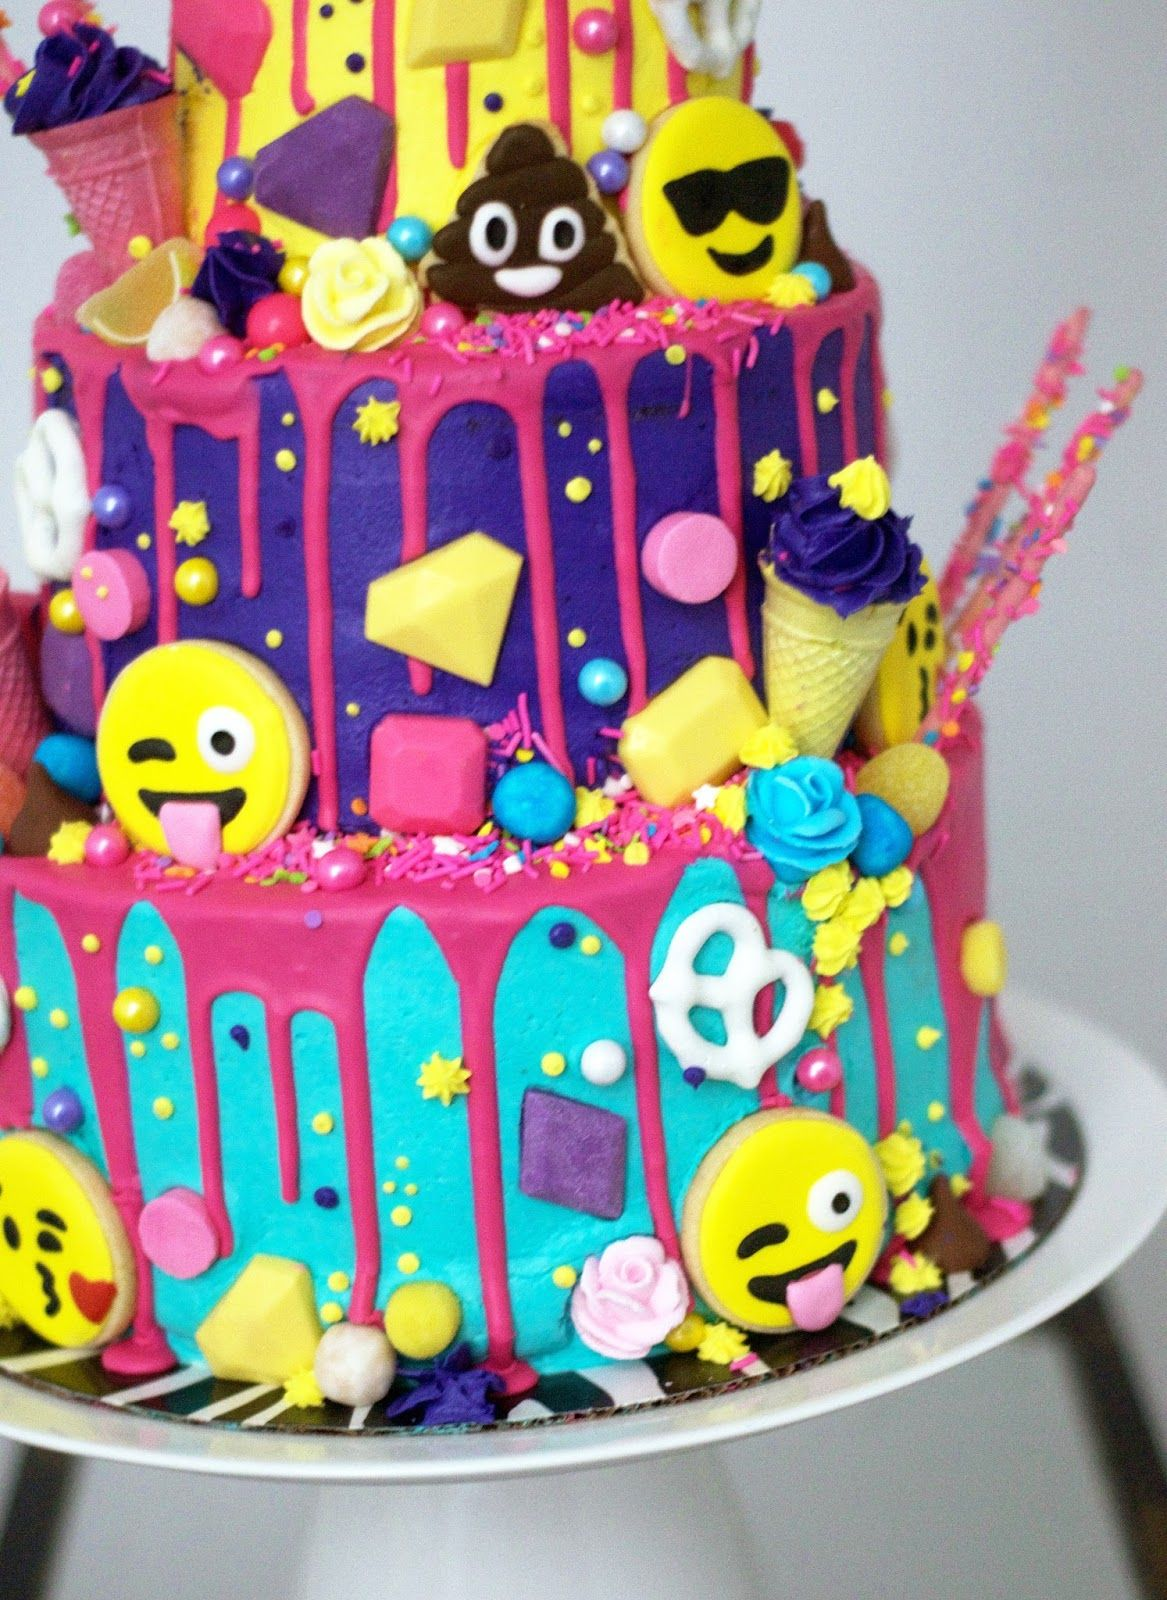 Three Tiered Emoji Cake